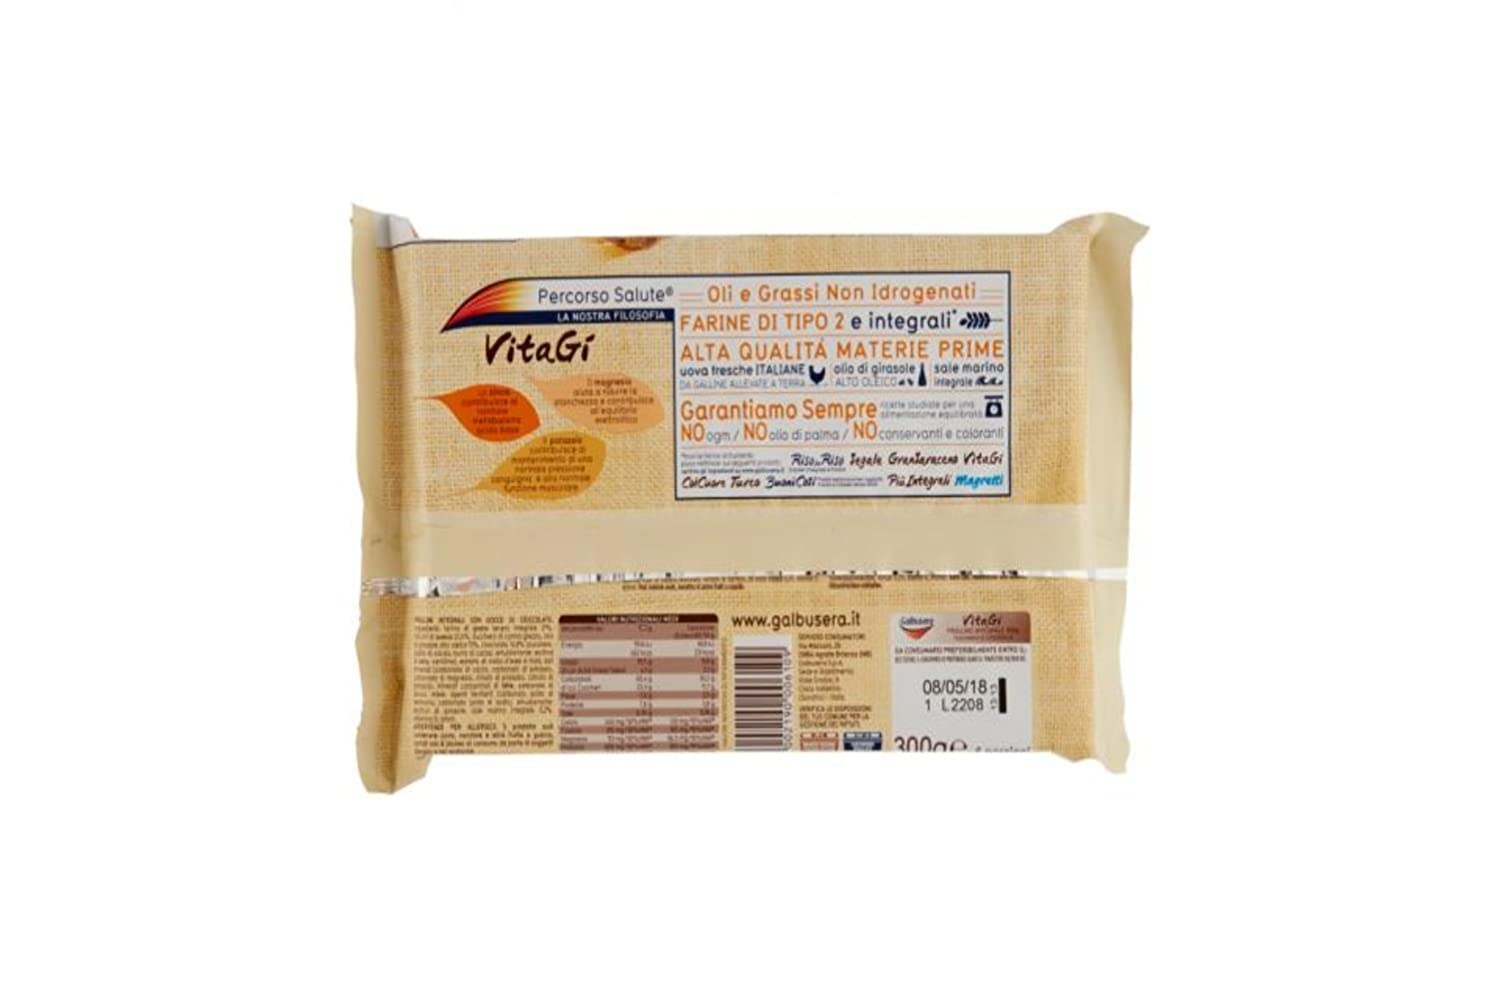 Amazon.com: Galbusera Vitagi Integral Biscuits with Chocolate Drops 300g, pack of 3